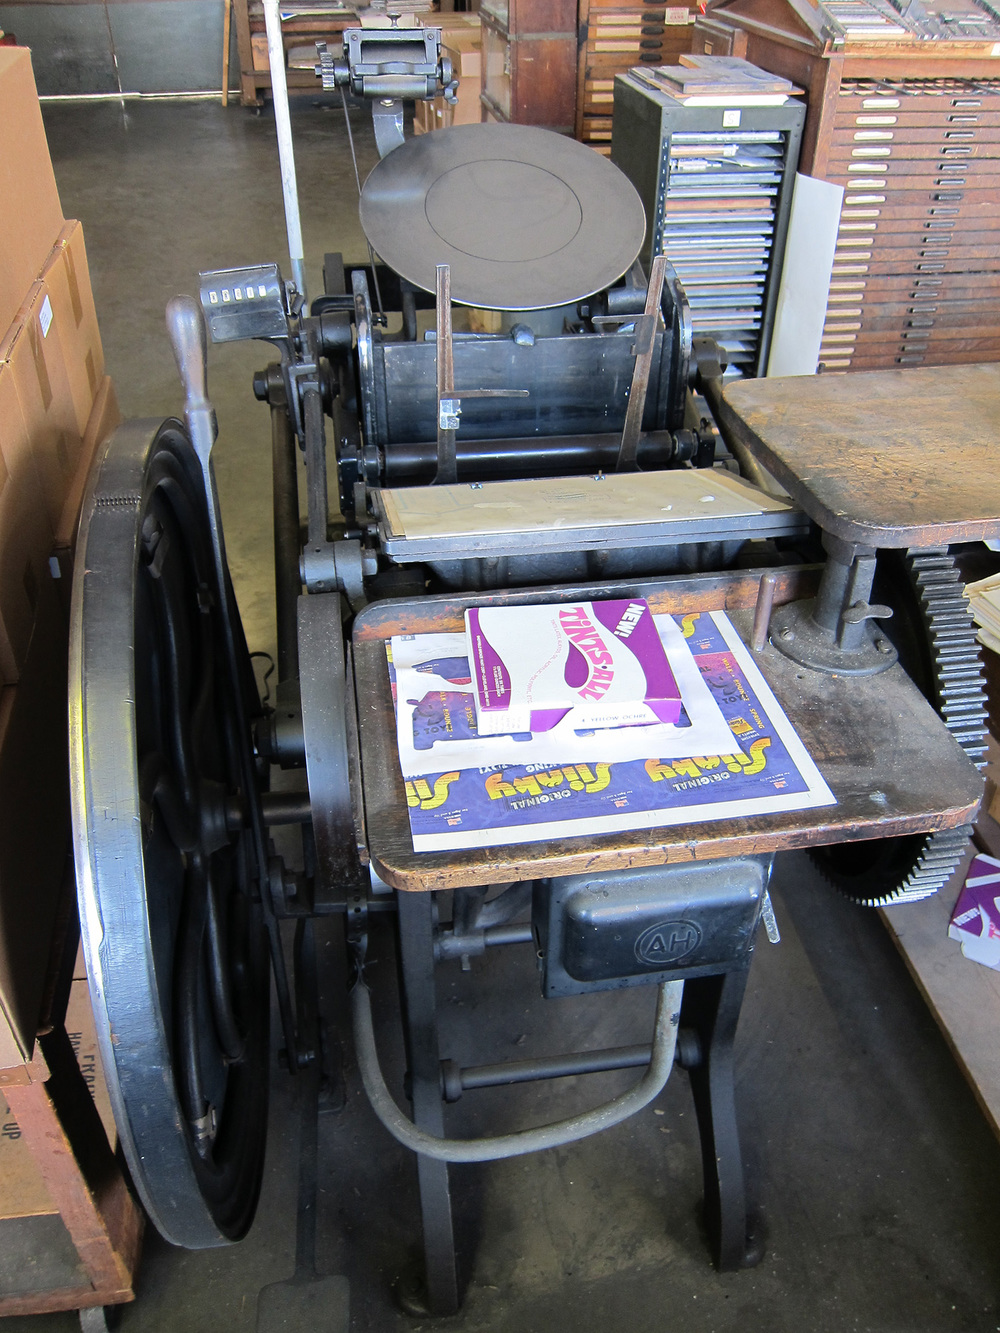 Hand-fed motorized Chandler & Price 8x12 old-style press, my great-grandfather's first